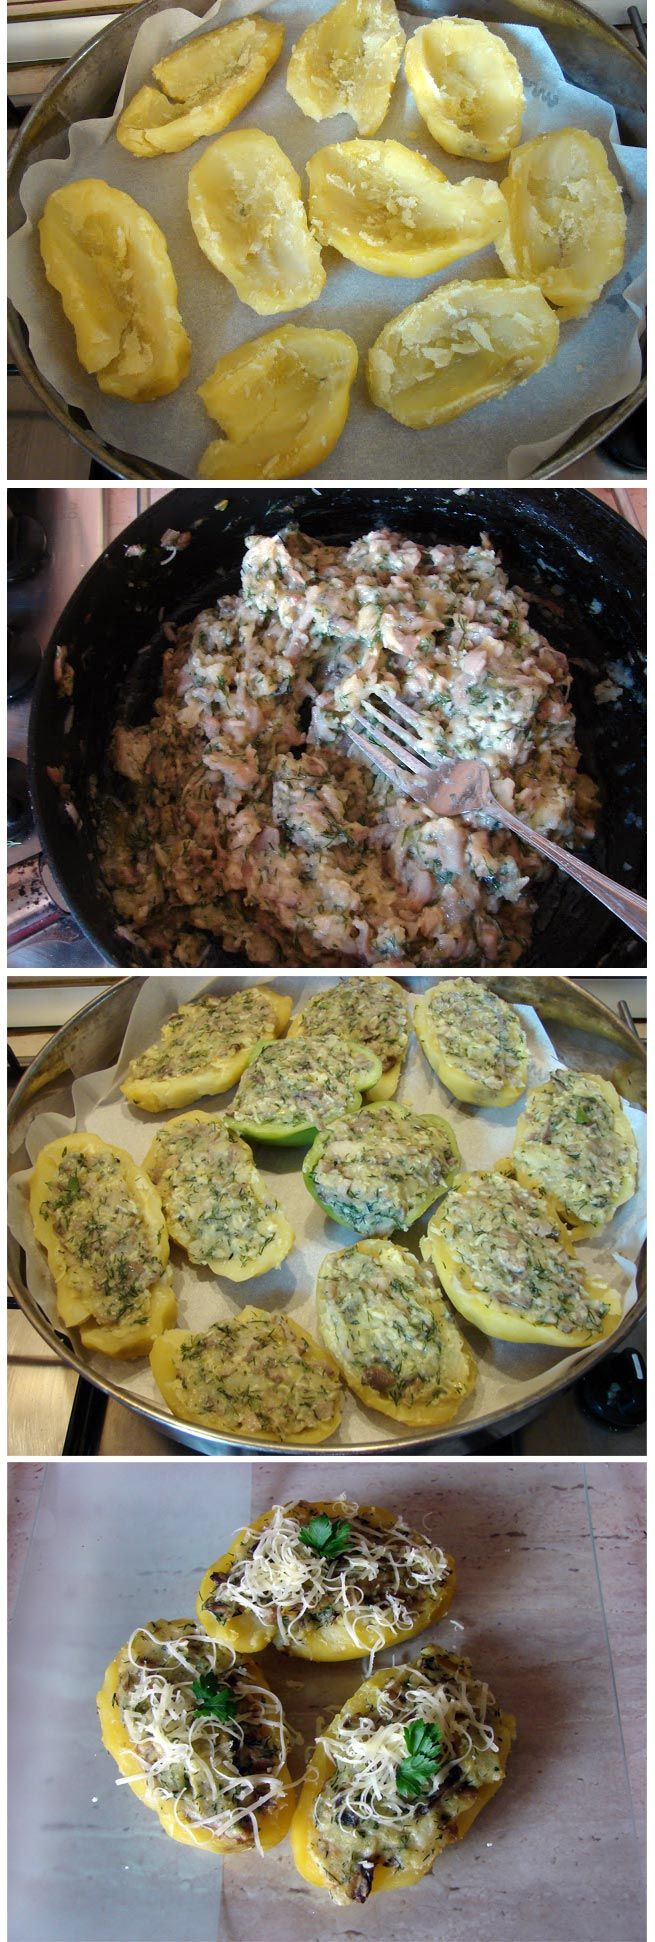 Potatoes stuffed with mushrooms and cheese - Top 10 Food Recipes